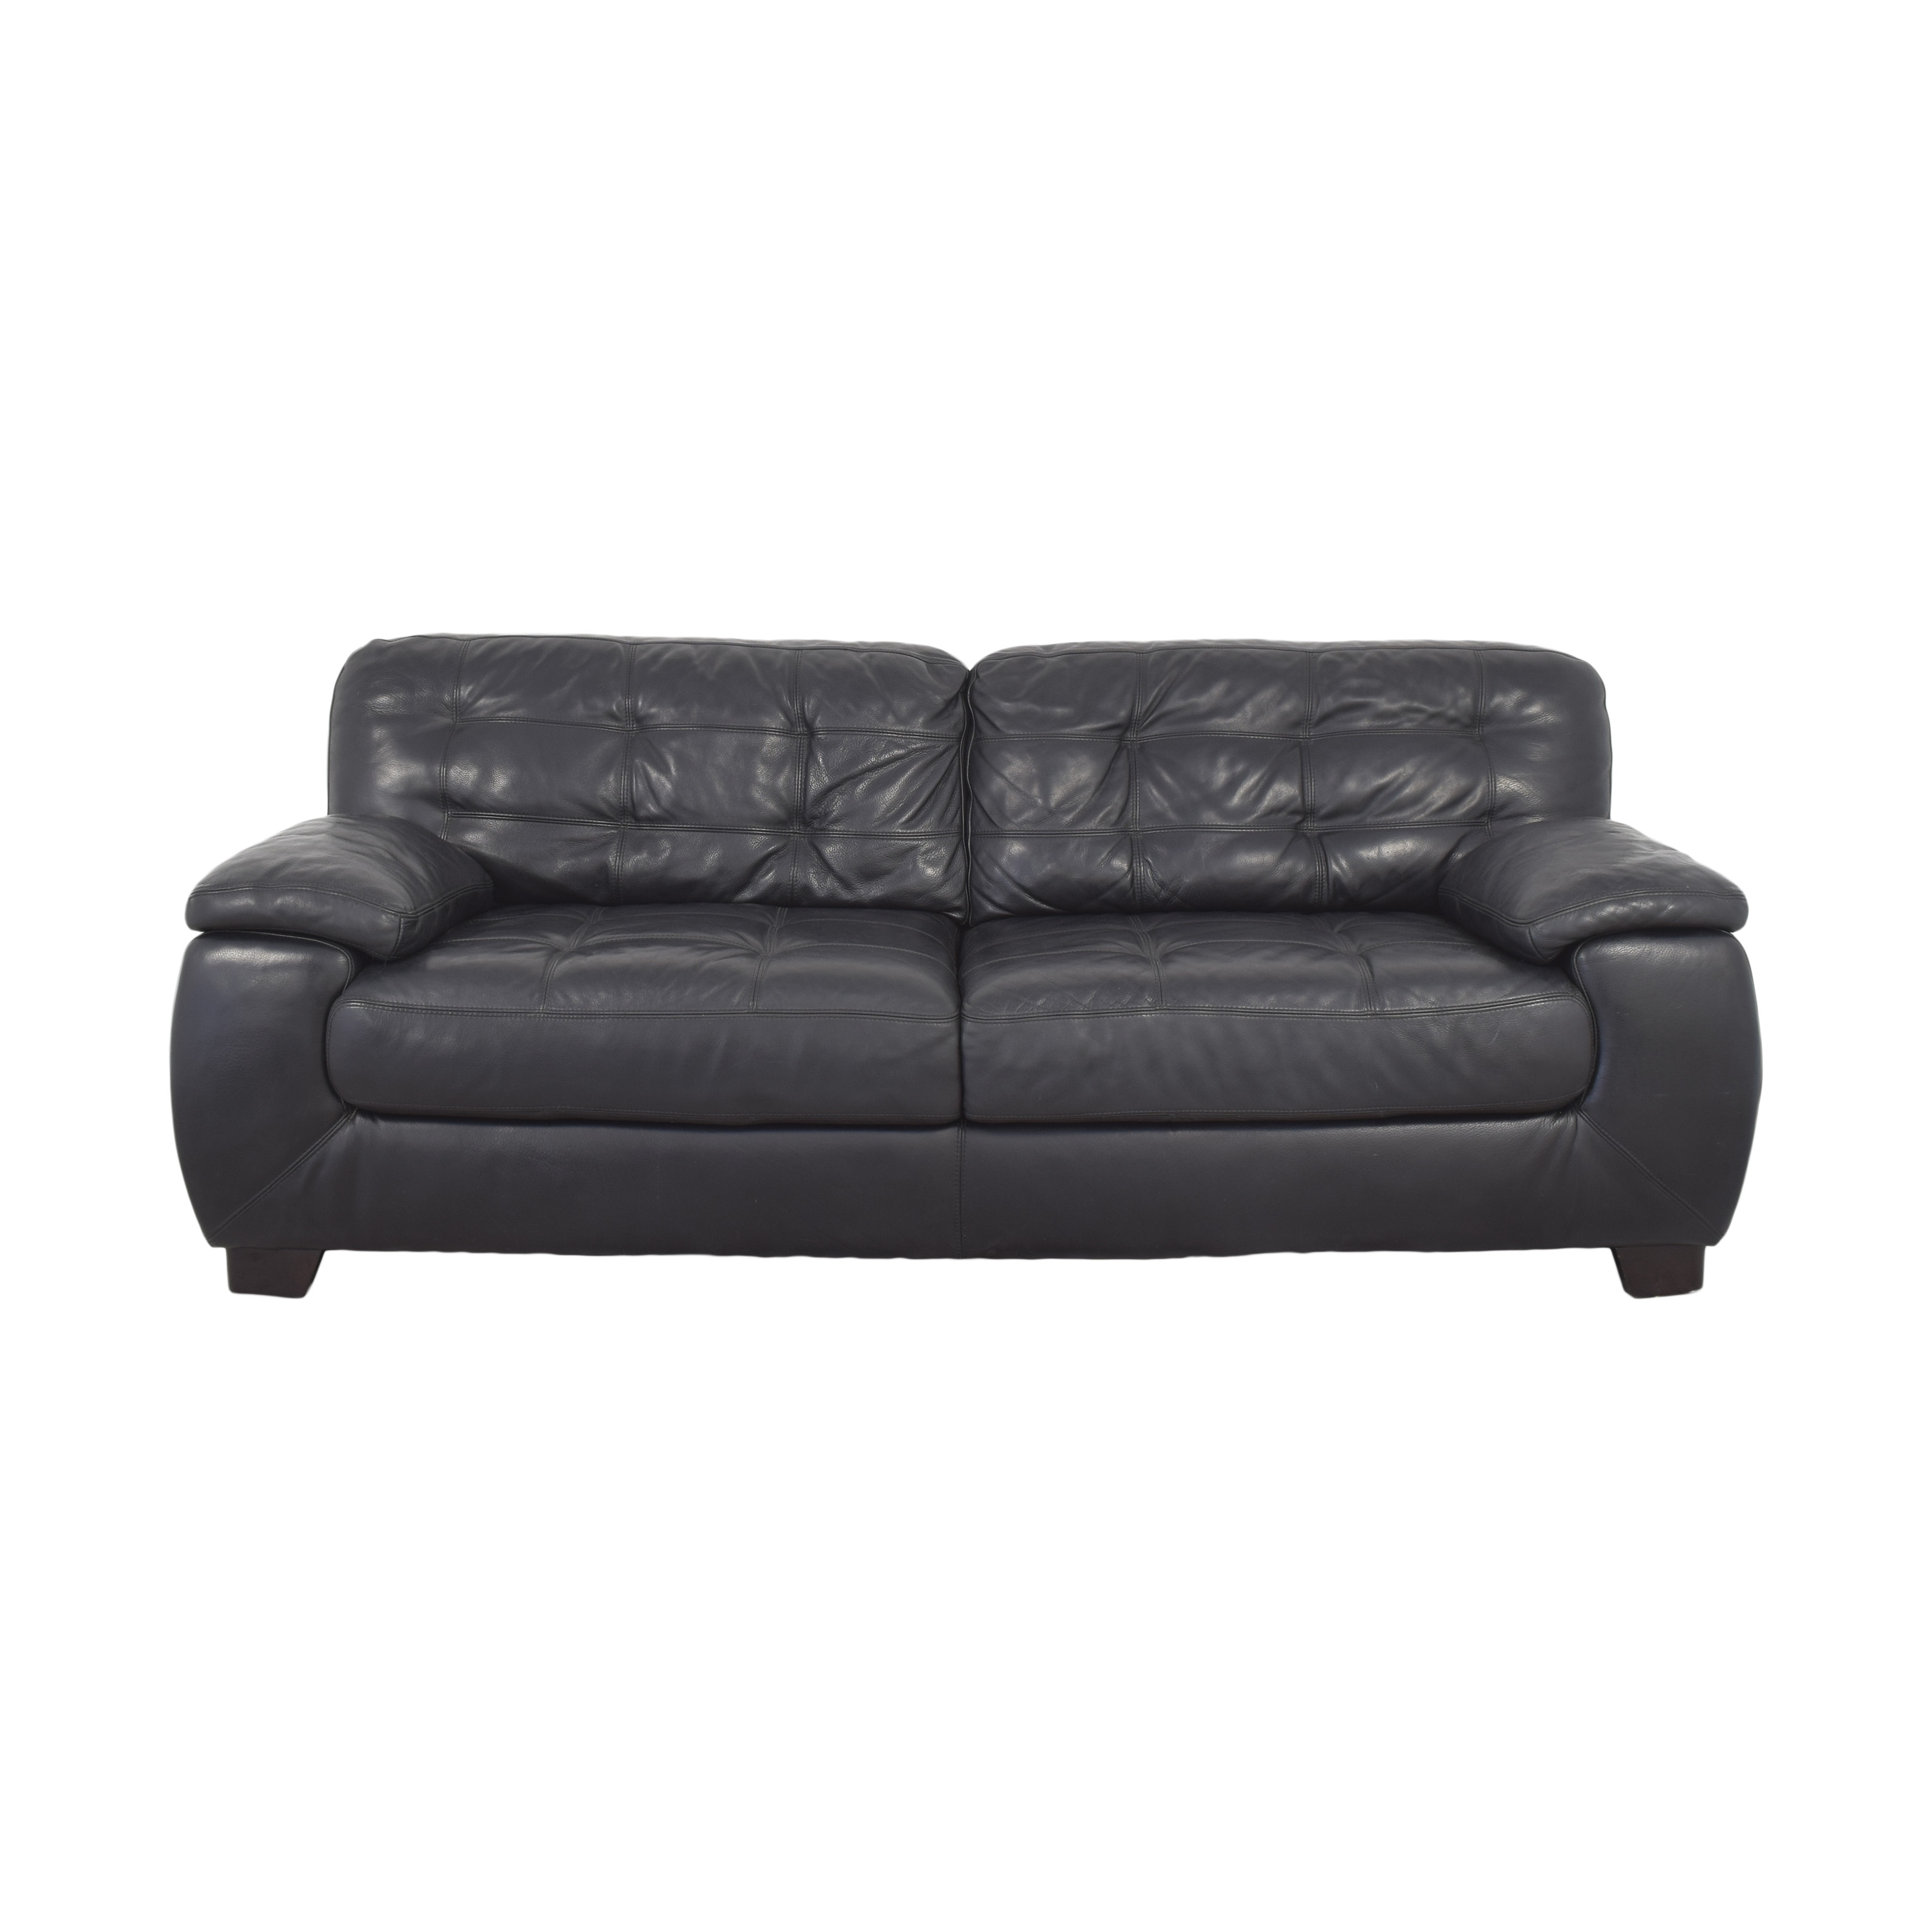 shop Raymour & Flanigan Two Cushion Sofa Raymour & Flanigan